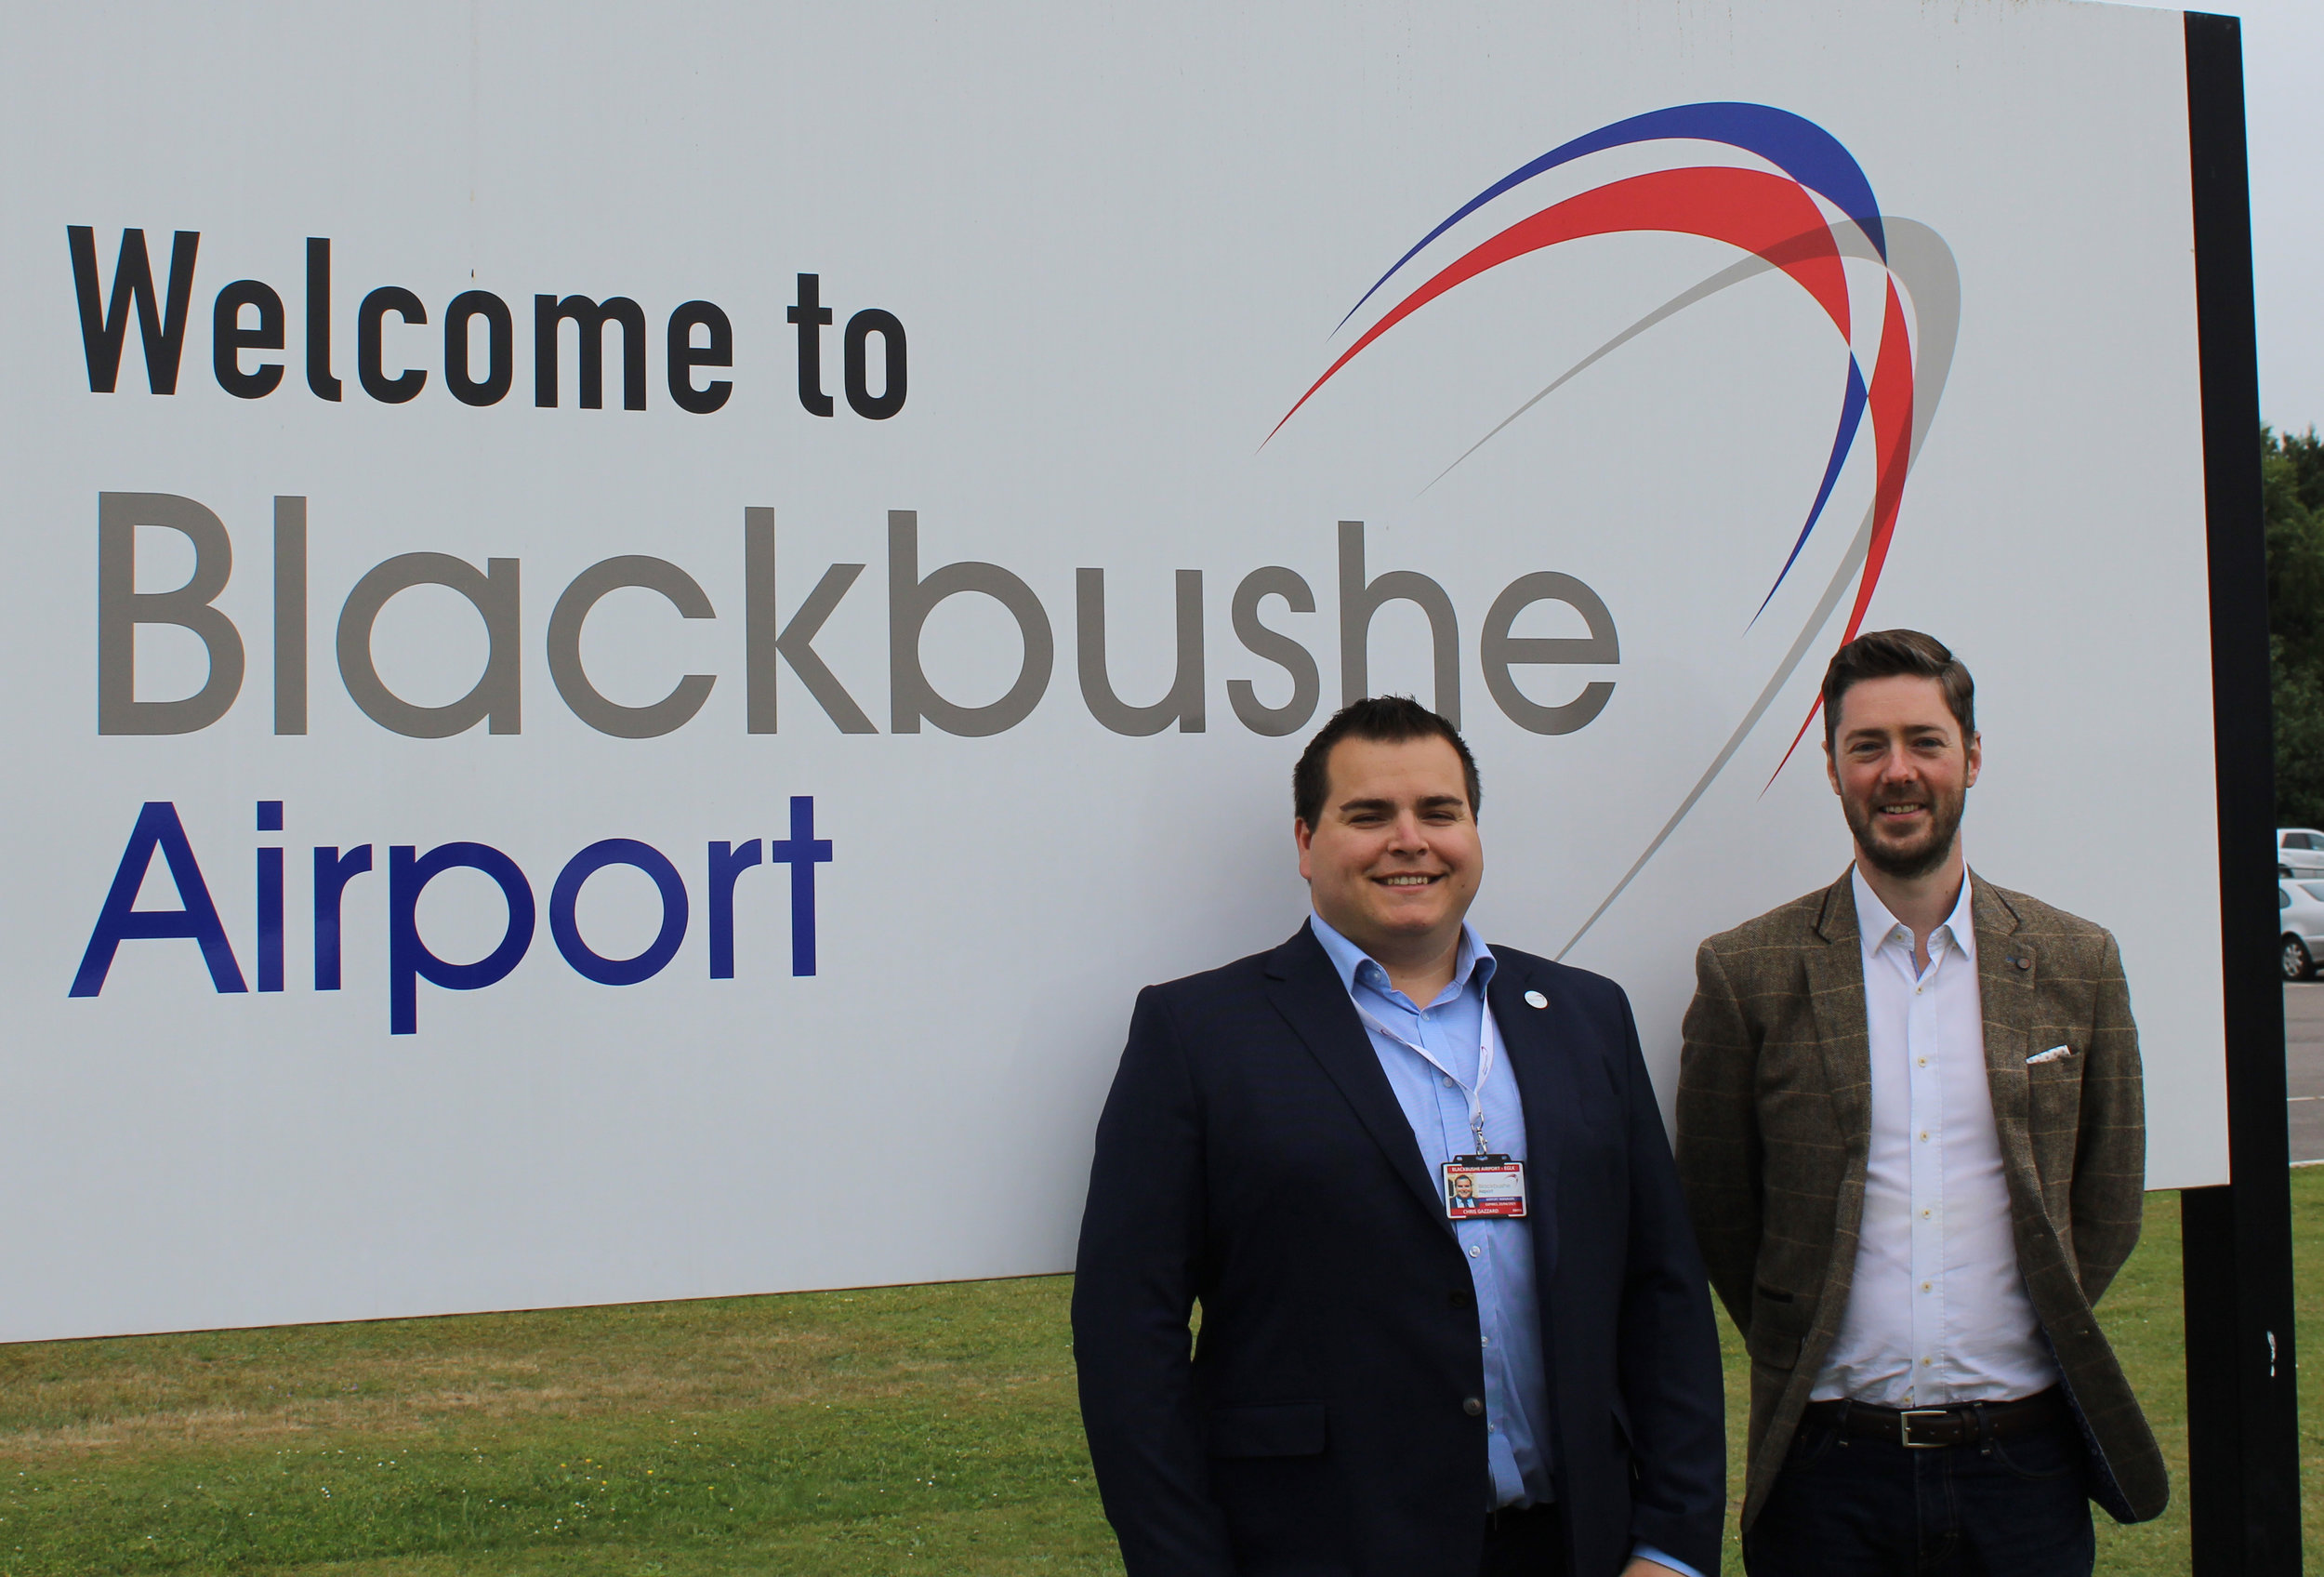 Left: Chris Gazzard, Blackbushe Airport manager. Right:Russell Halley, Air BP general aviation regional sales manager, UK